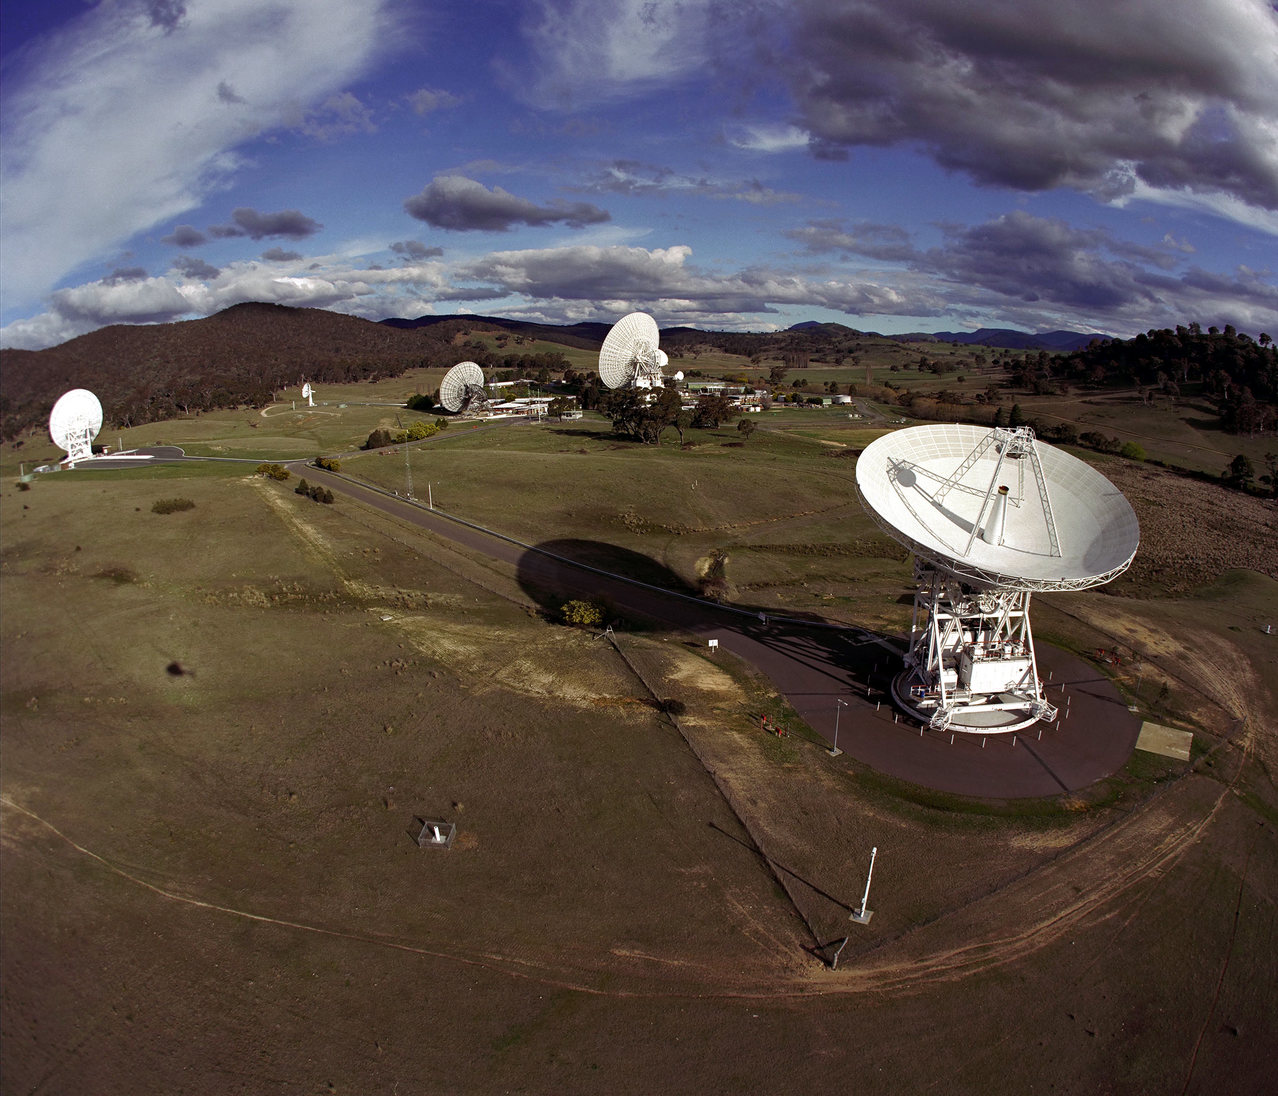 The Canberra Deep Space Communications Complex in Australia is part of NASA's Deep Space Network, receiving and sending radio signals to and from spacecraft.